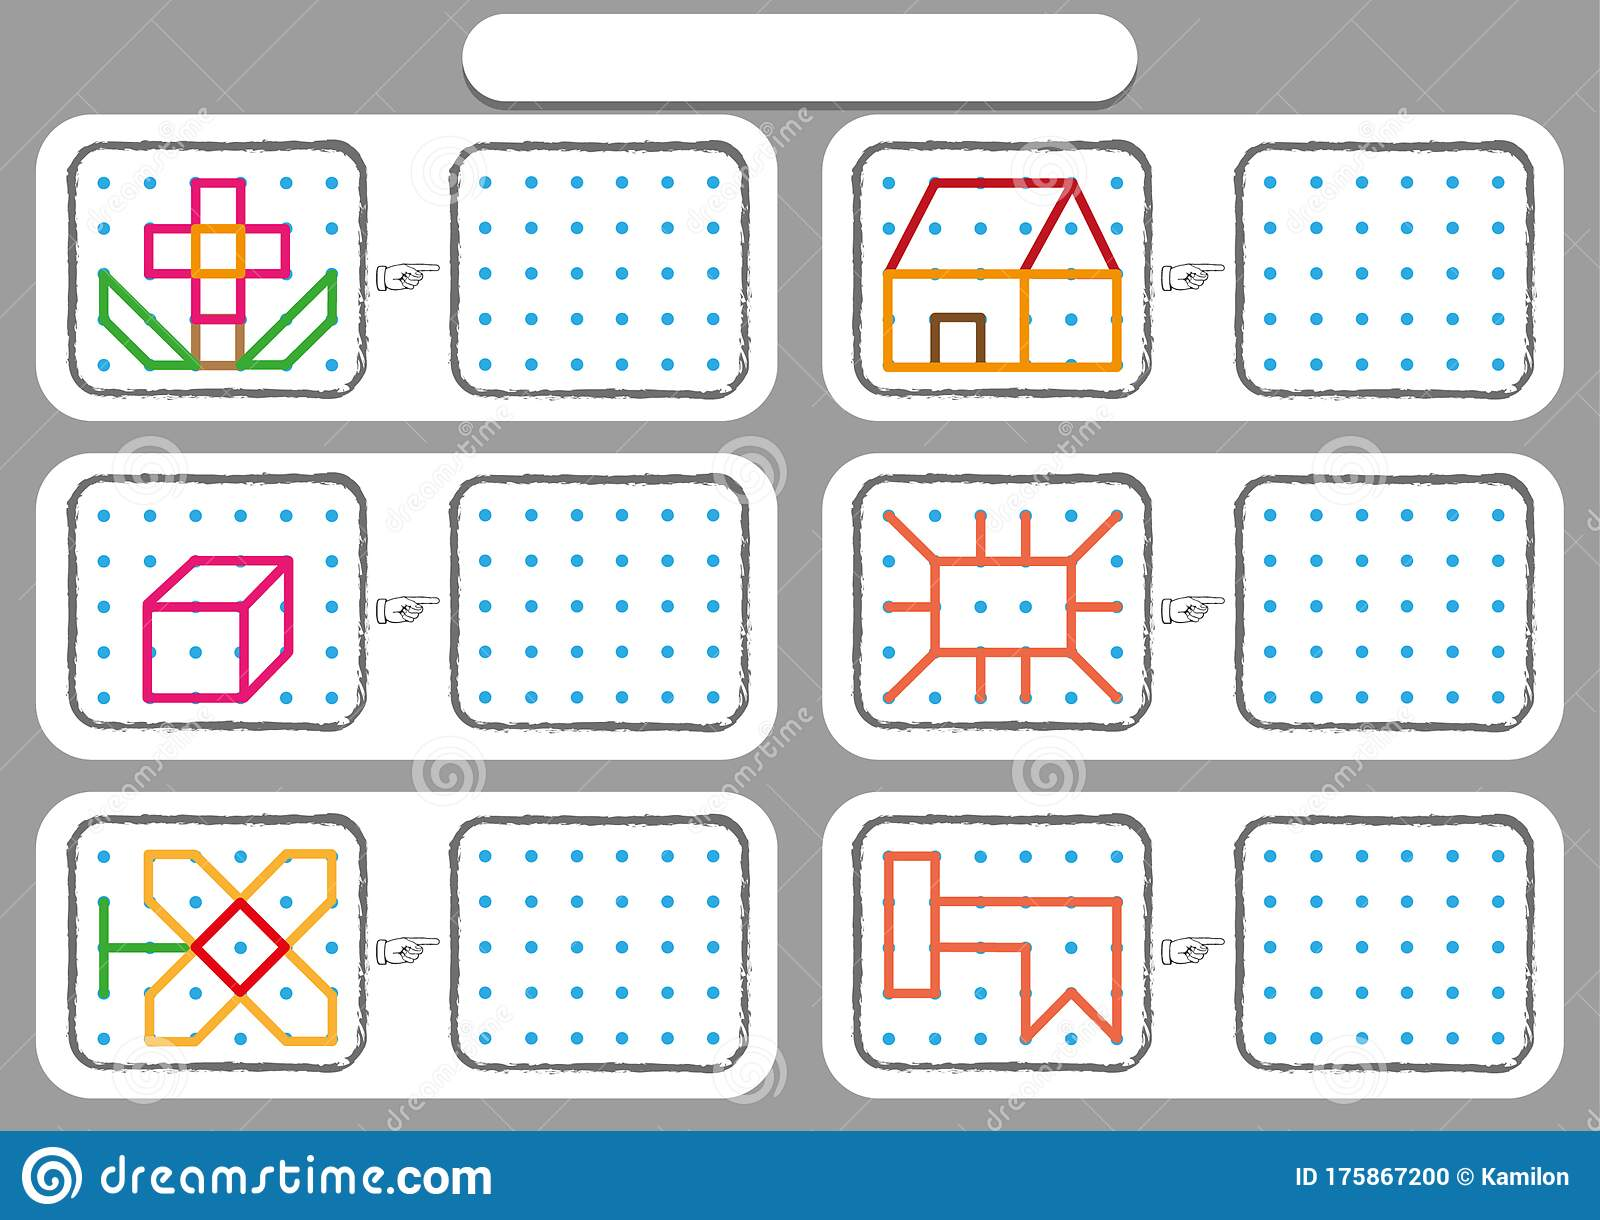 Worksheet For Preschool Kids Dot To Dot Copy Practice Copy The Shapes Visual Perception Activities Stock Vector Illustration Of Digit Logical 175867200